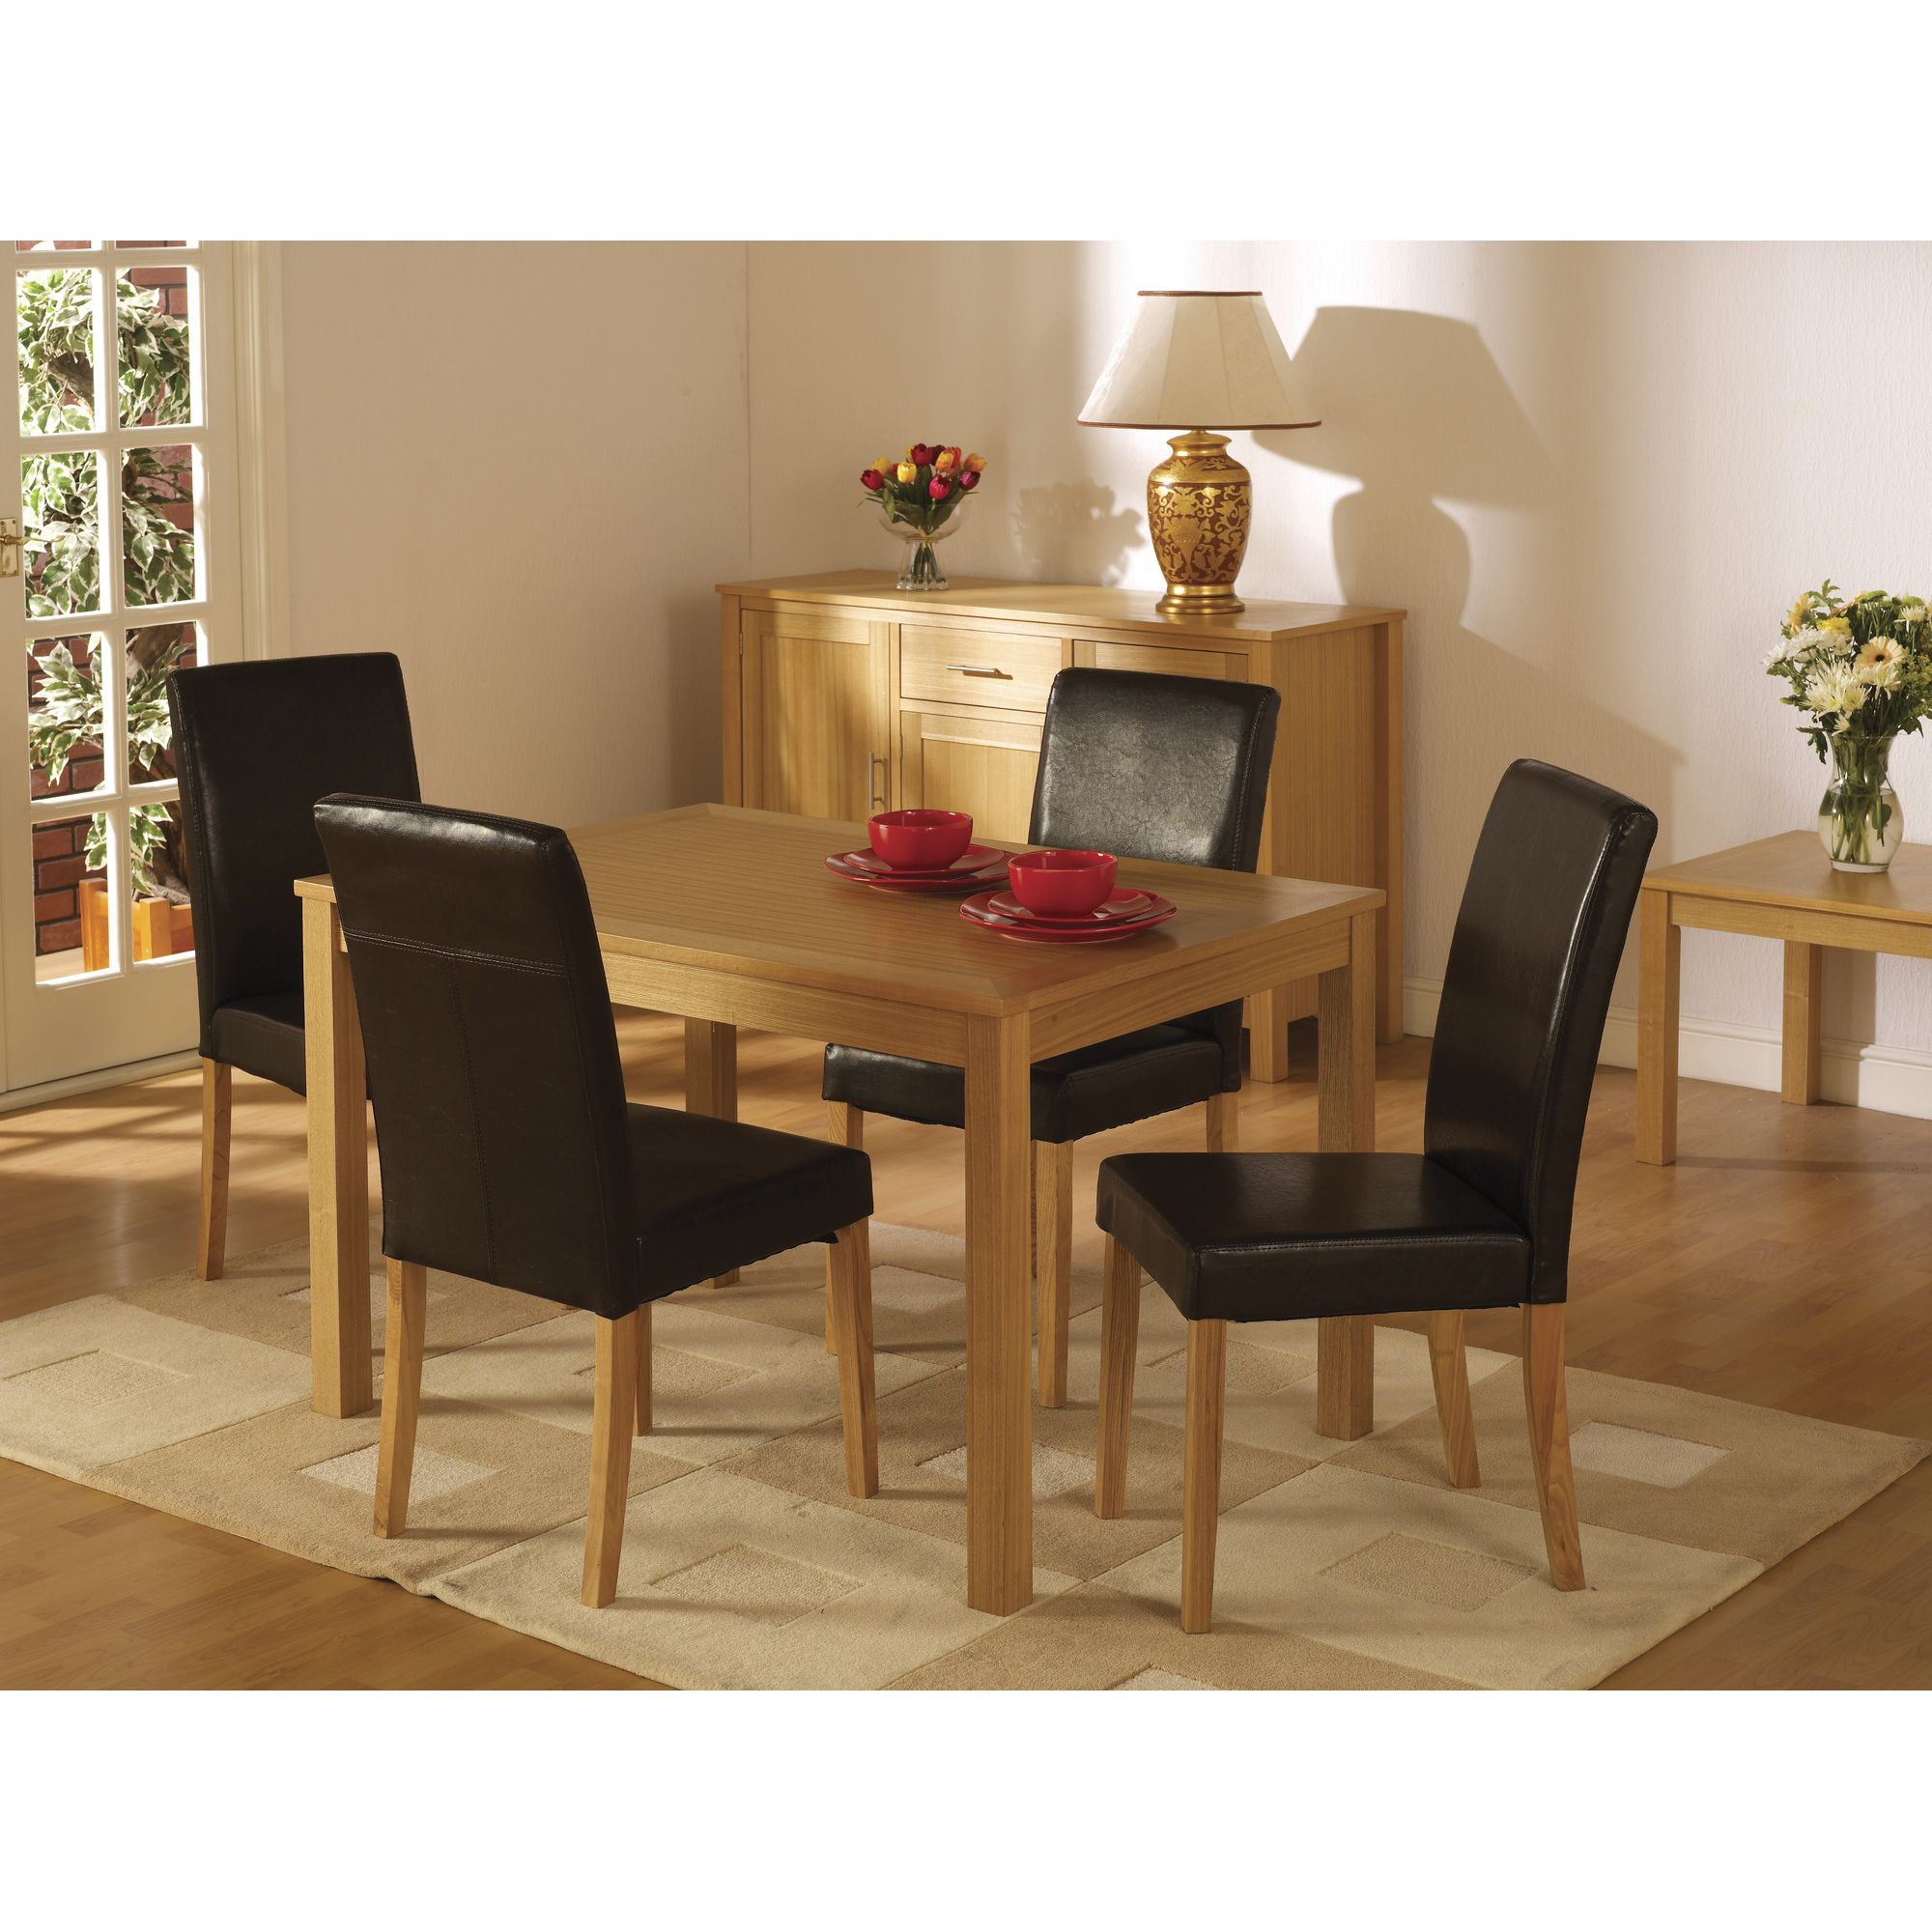 Home Essence Oakmere 5 Piece Dining Set - Espresso Brown